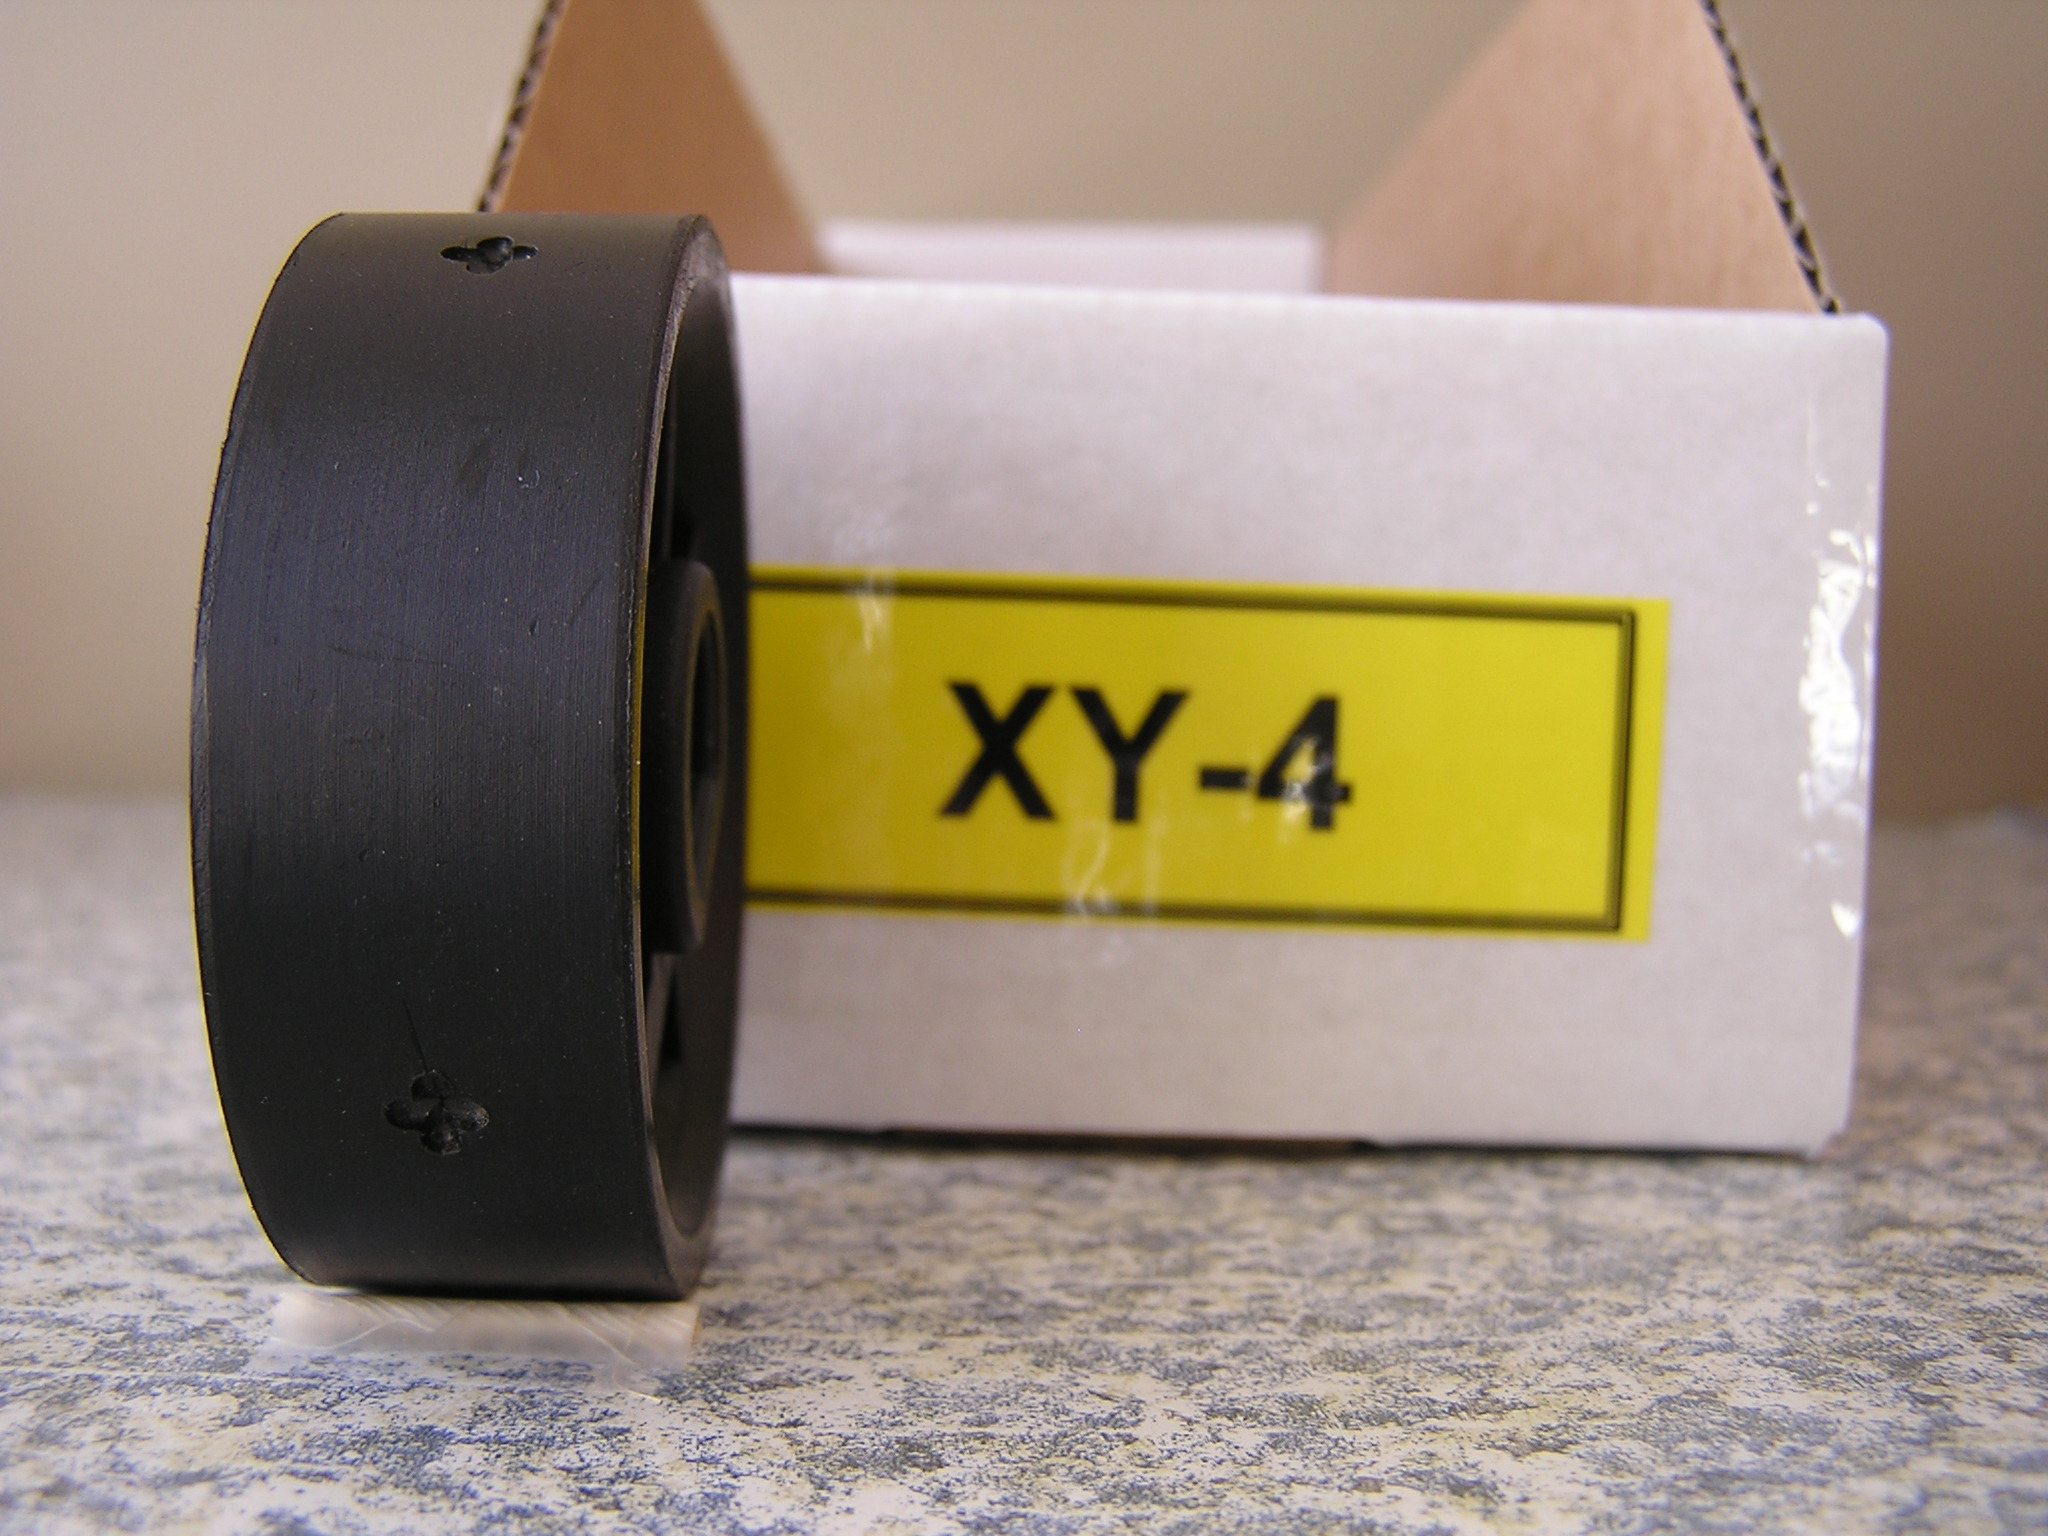 XY-4 Roller for Jang Seeder, with 4 Criss Cross Slots -Used Mostly for Lettuce